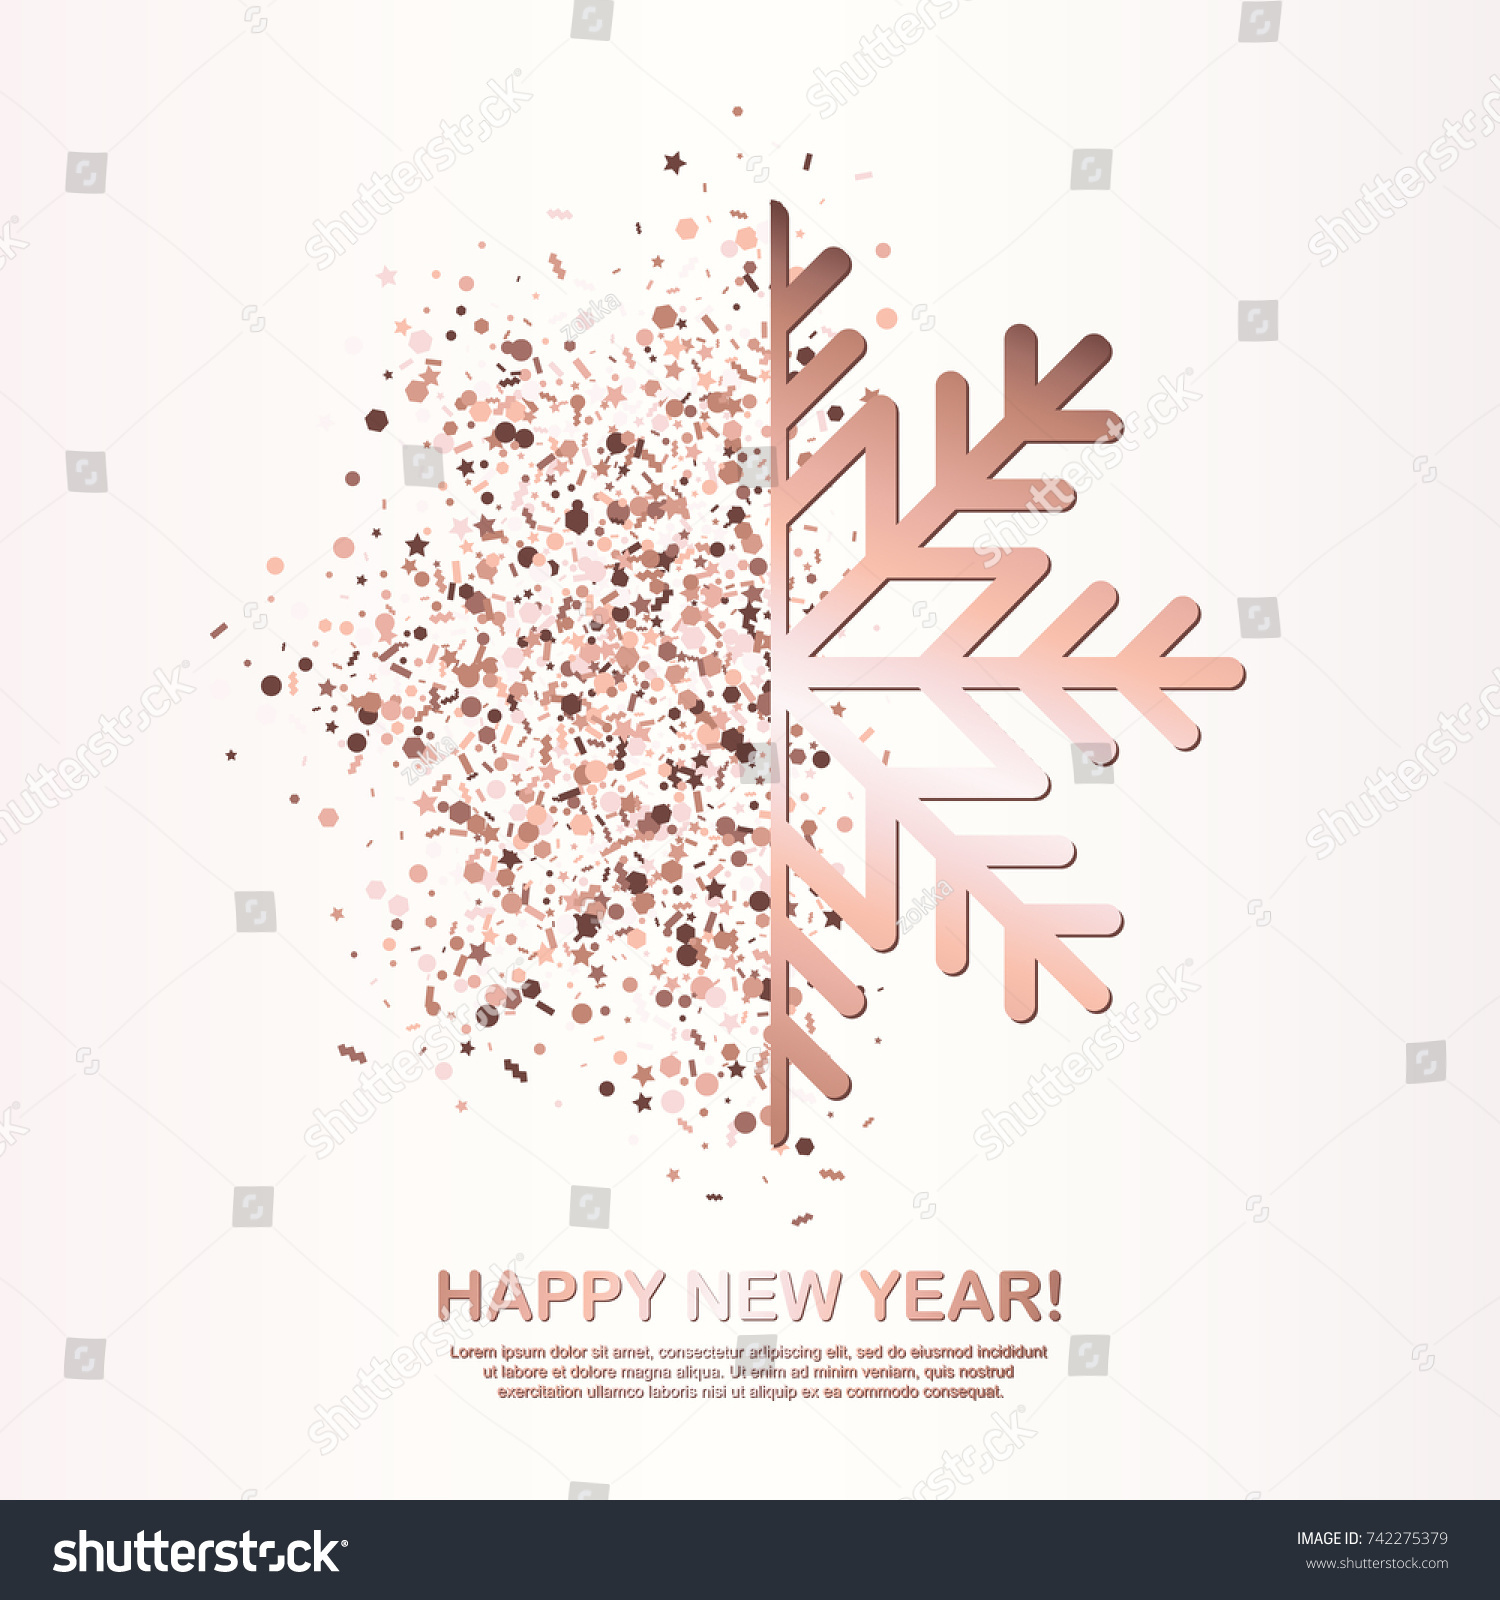 Happy New Year Greeting Card Rose Stock Vector (Royalty Free ...